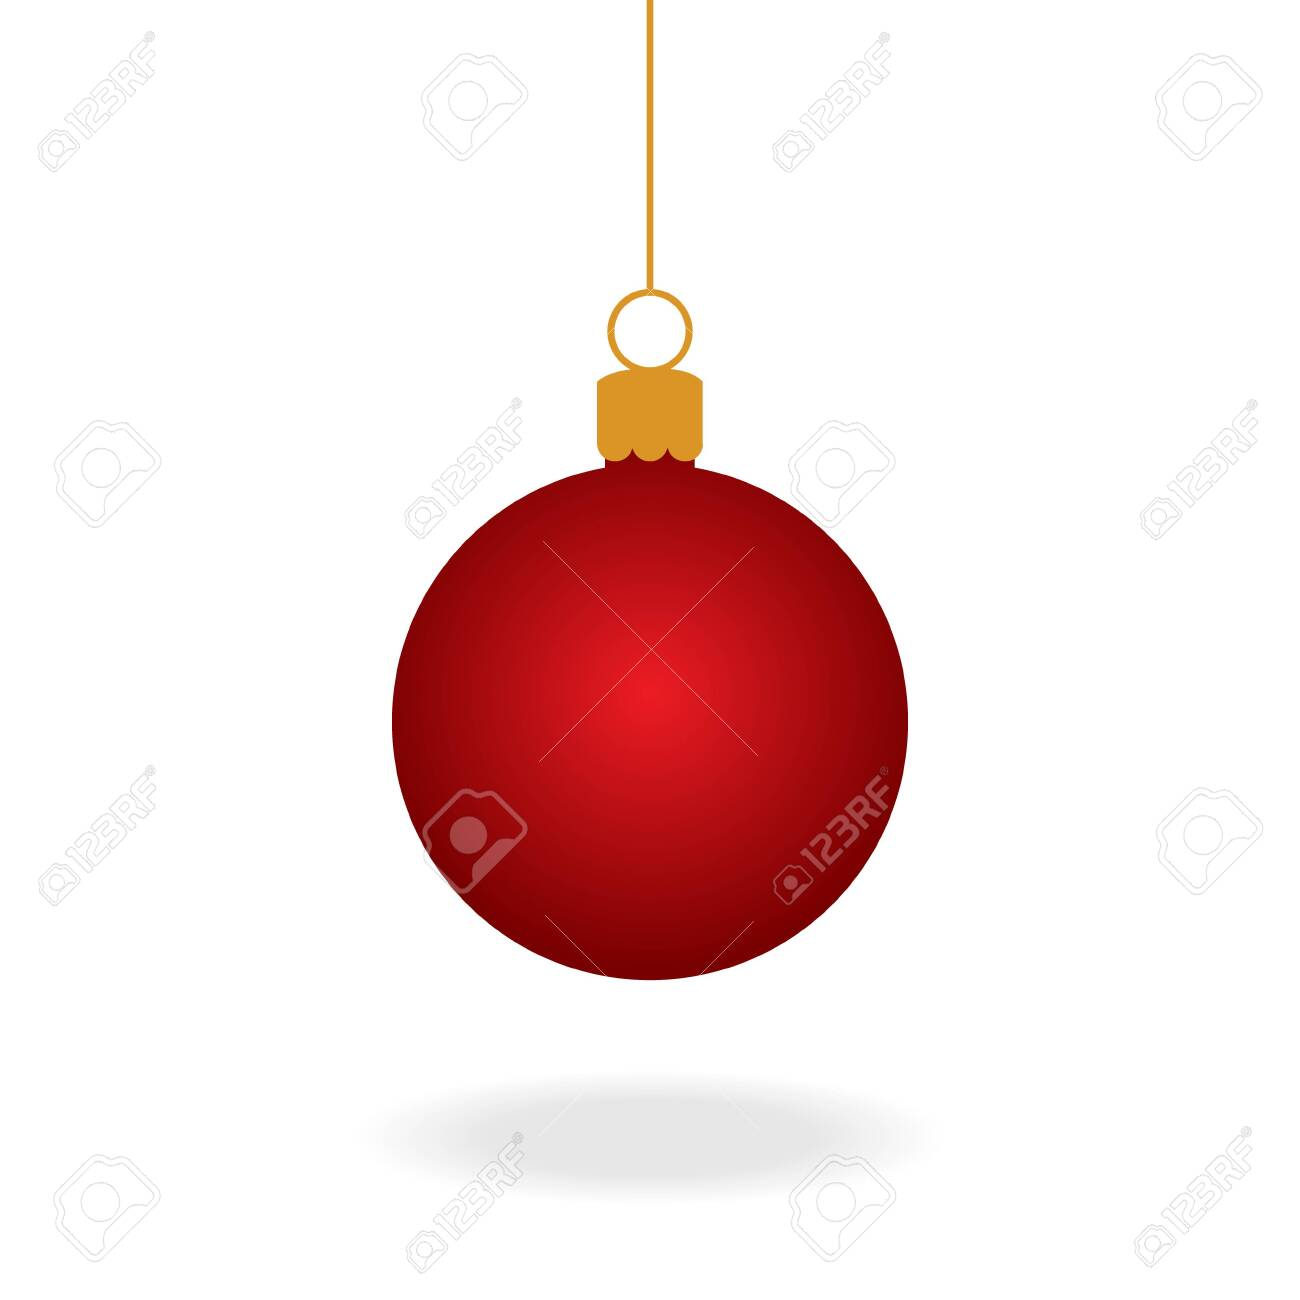 Christmas Ornament Vector.Realistic Red Christmas Ball Ornament Vector Graphic Illustration